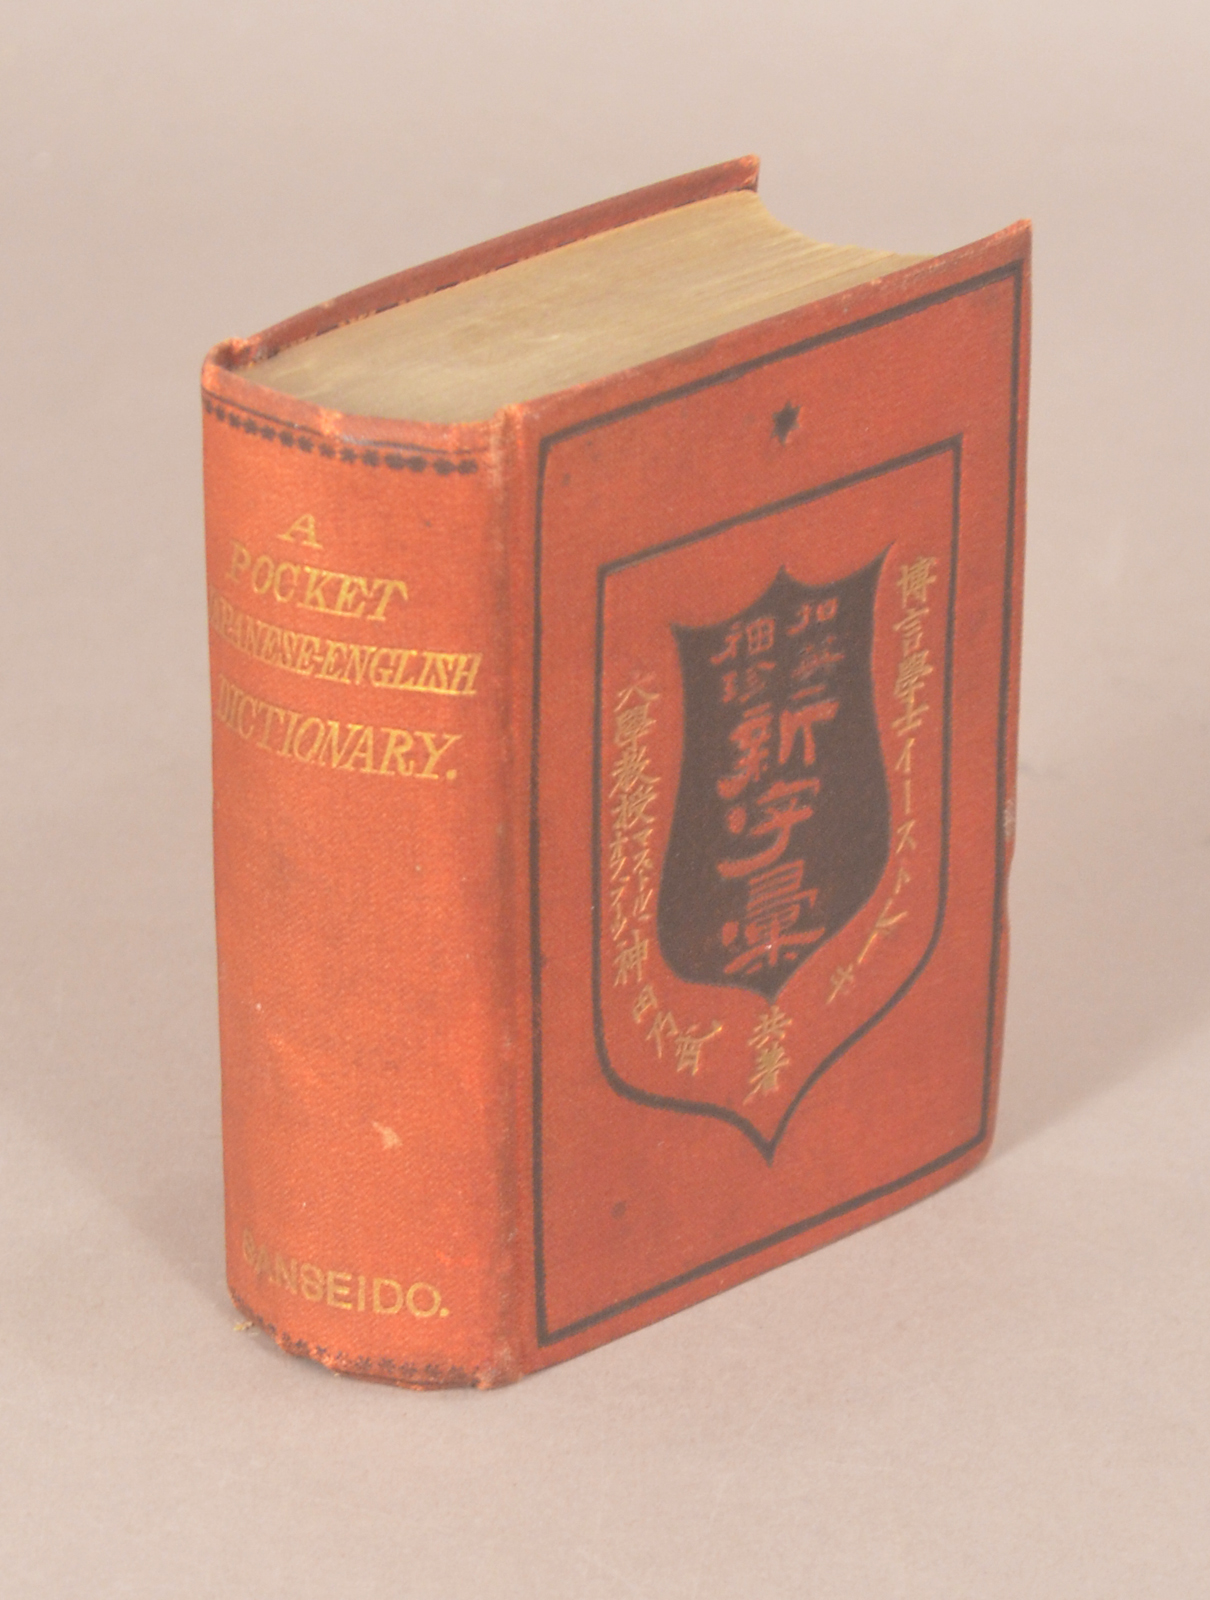 EASTLAKE, F. W. - New Pocket Japanese-English Dictionary